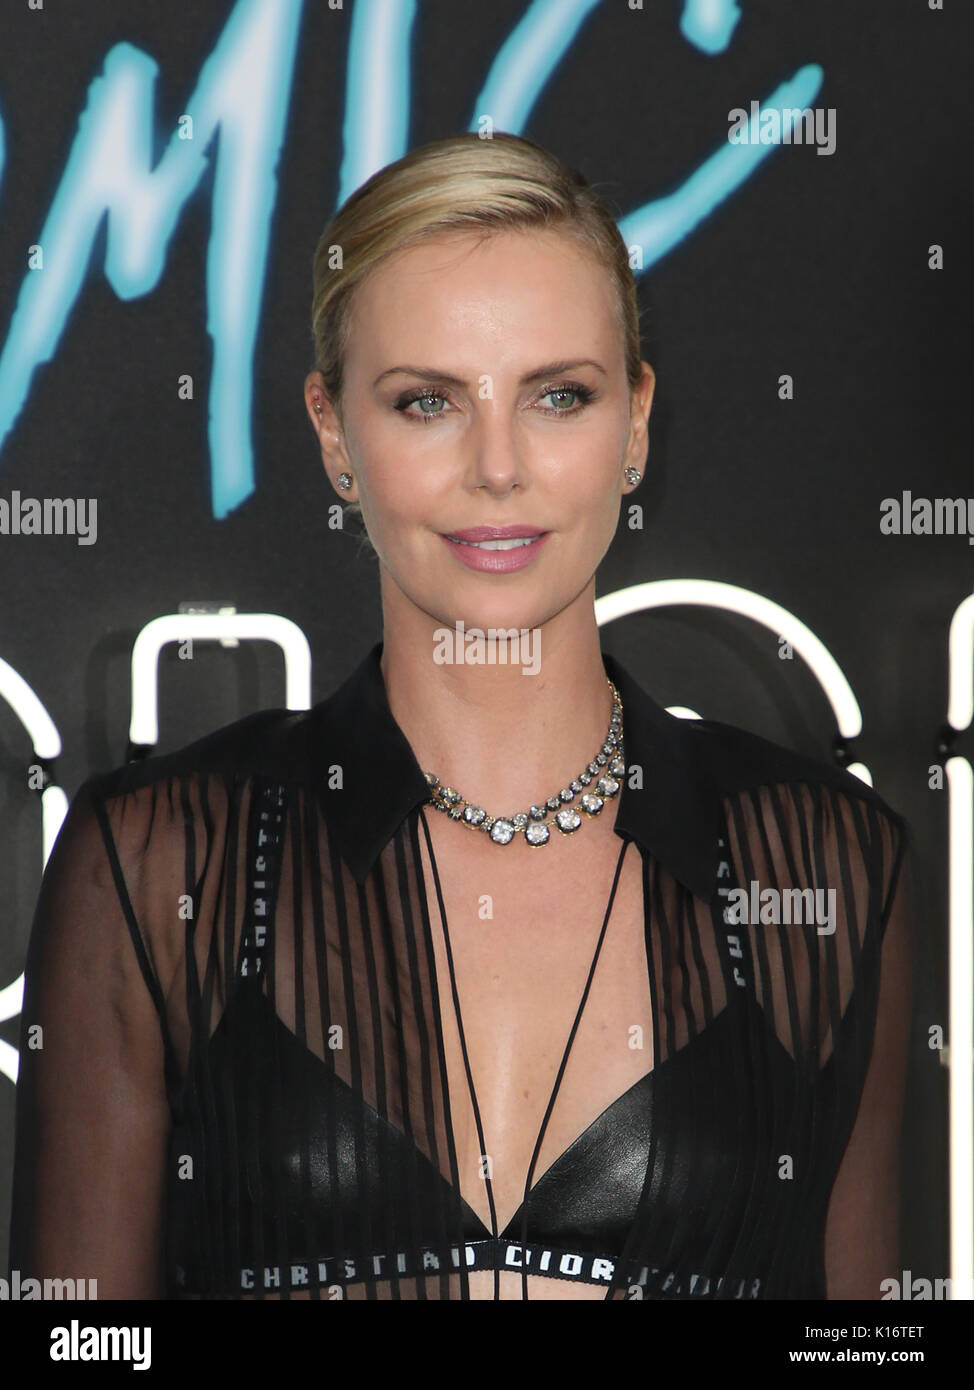 Charlize theron atomic blonde premiere in los angeles new foto